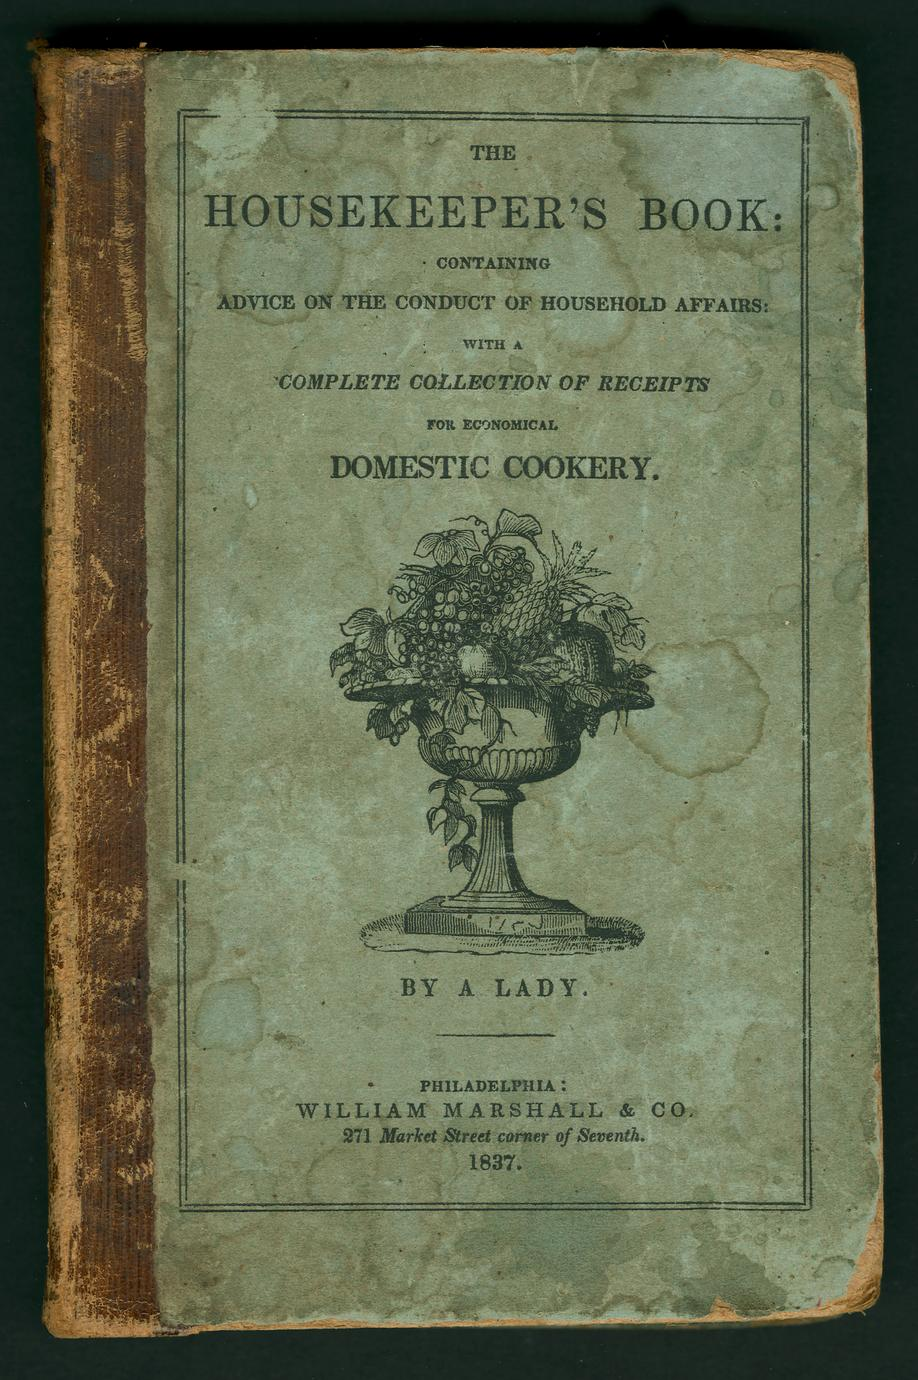 The housekeeper's book (1 of 3)